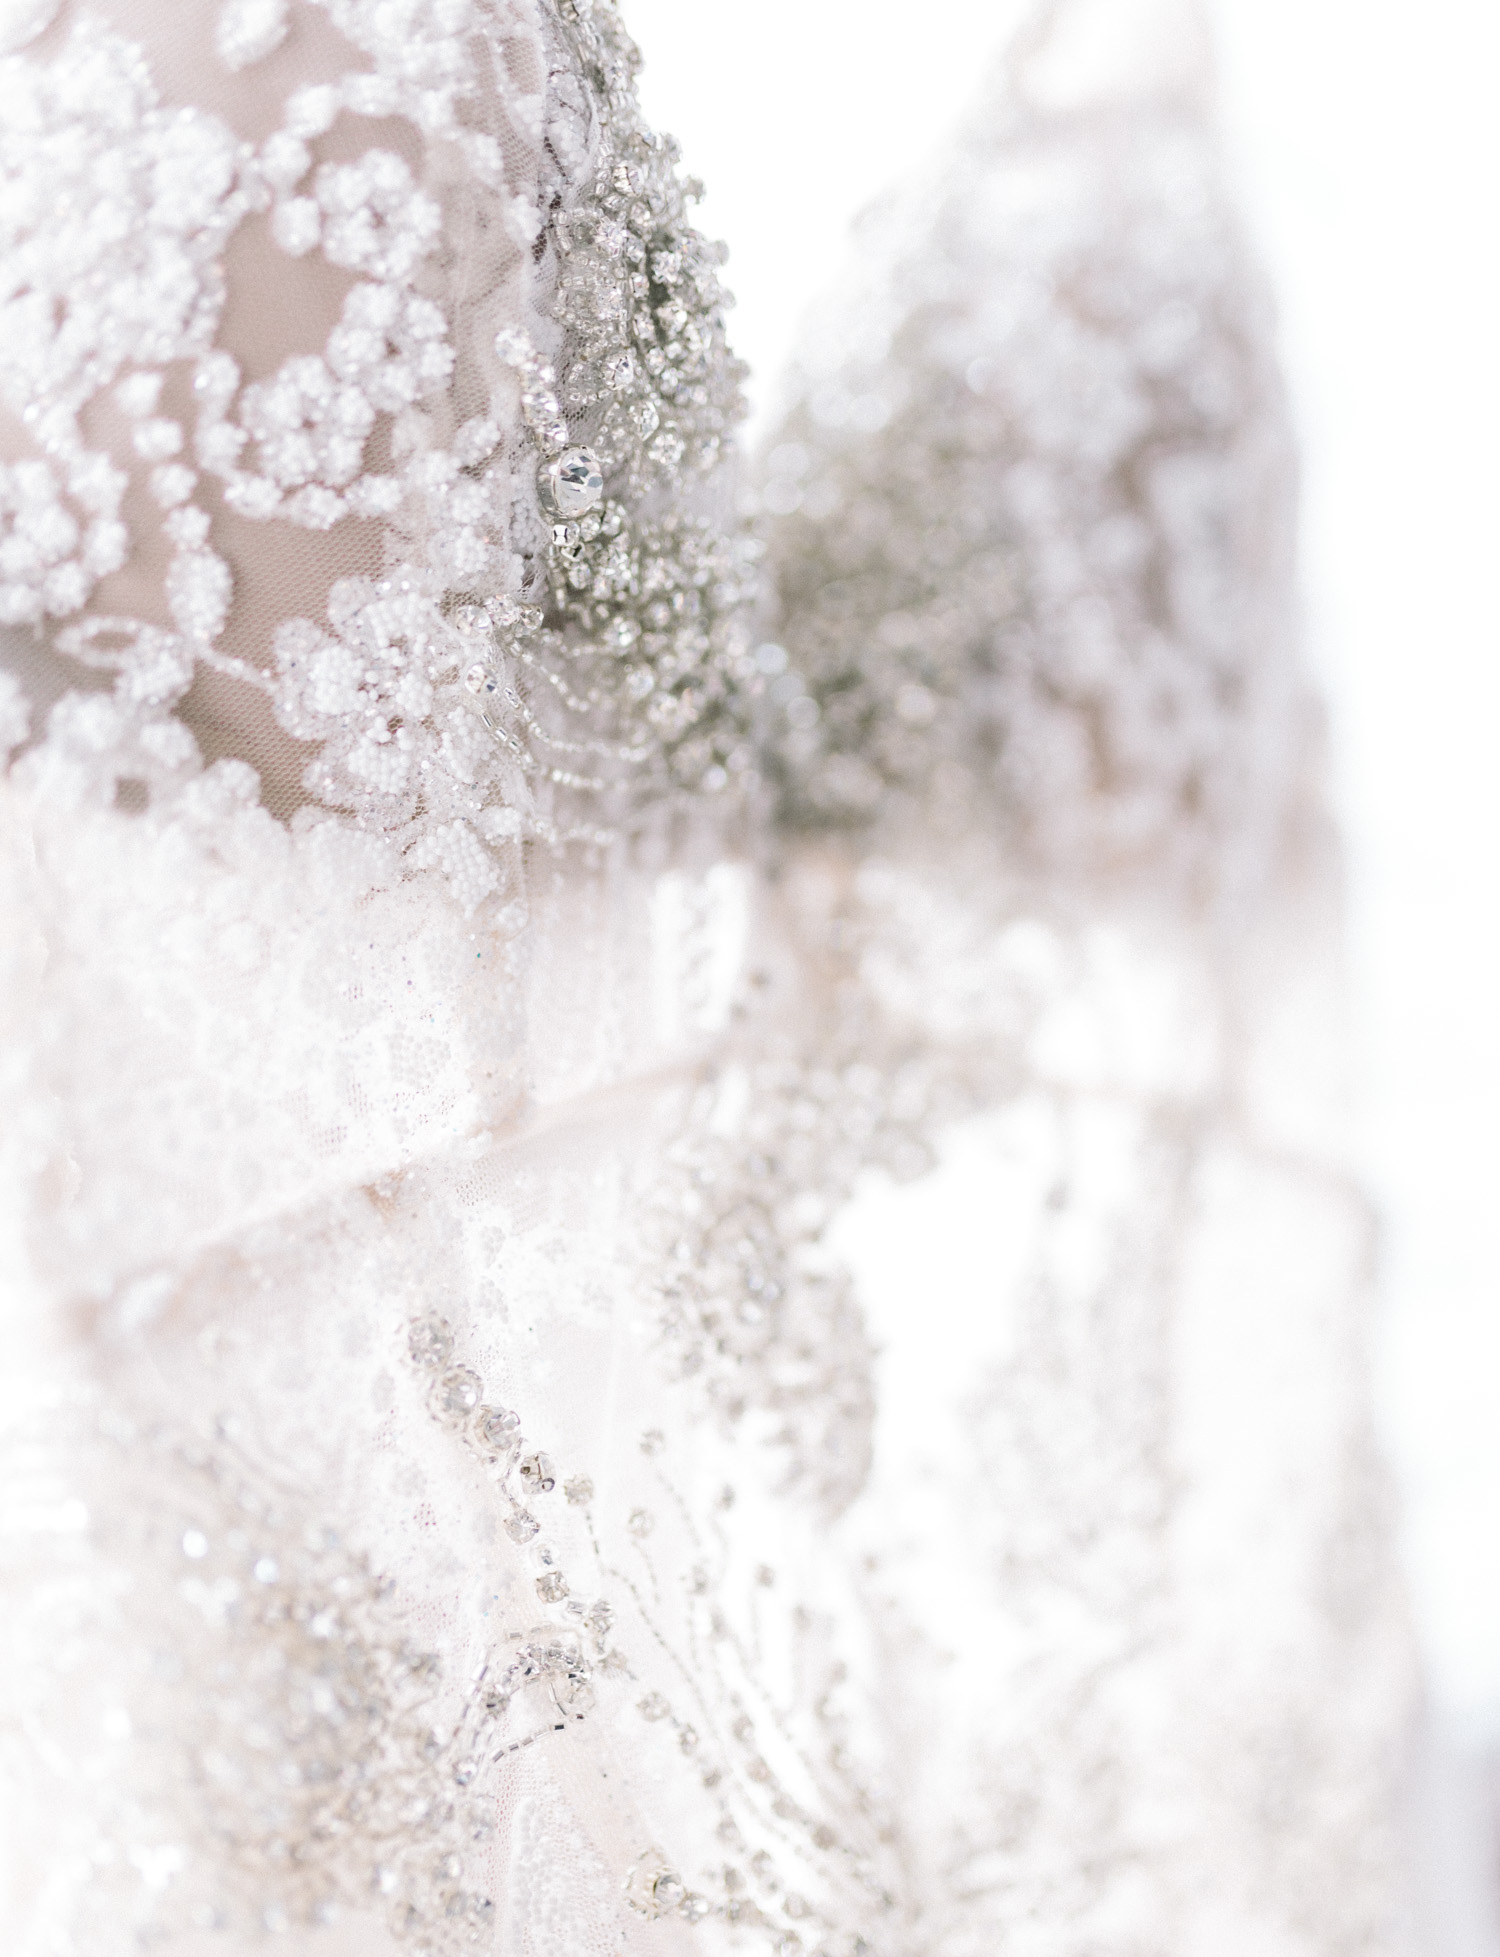 close up detail of a wedding dress with a sheer bodice and intricate beading and crystal detail in New York City